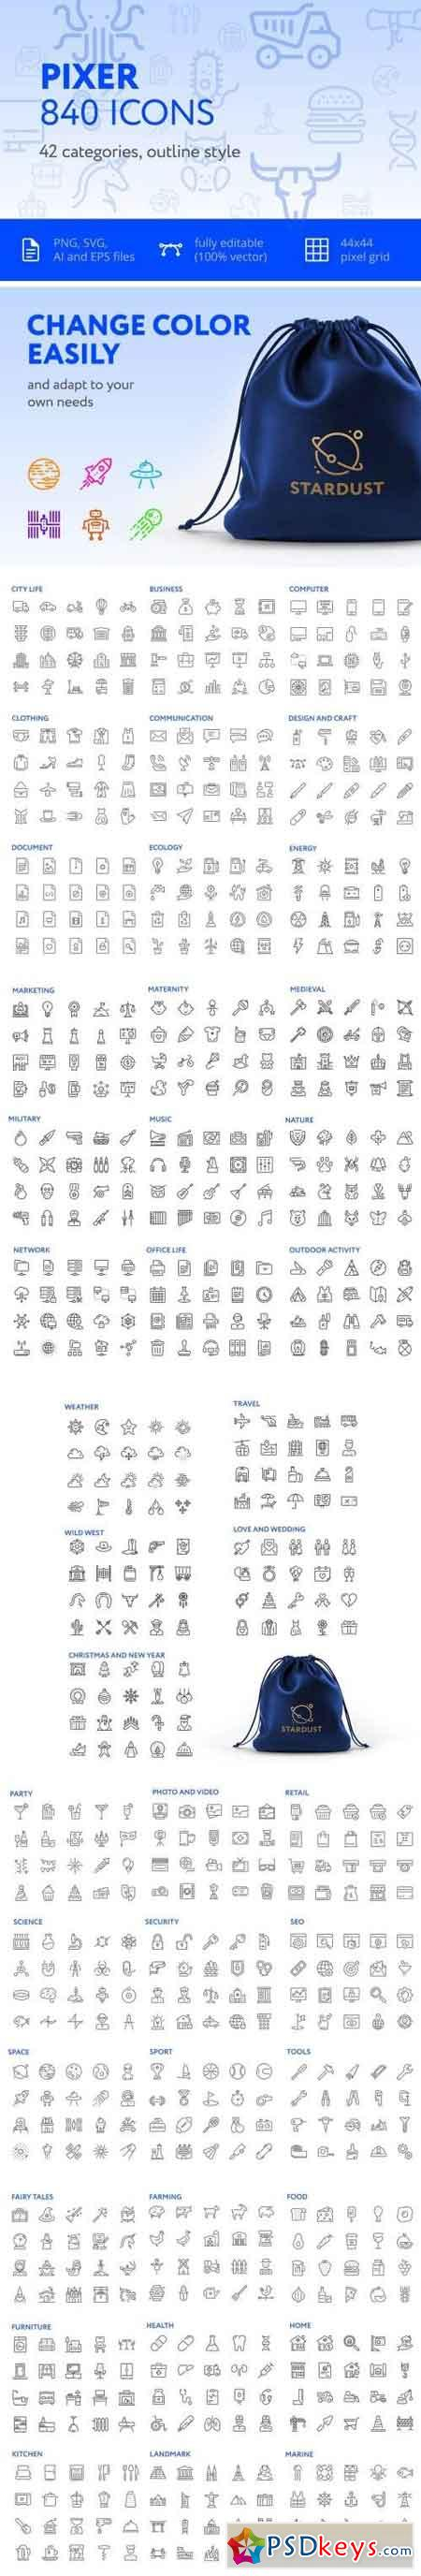 Pixer — 840 outline icons